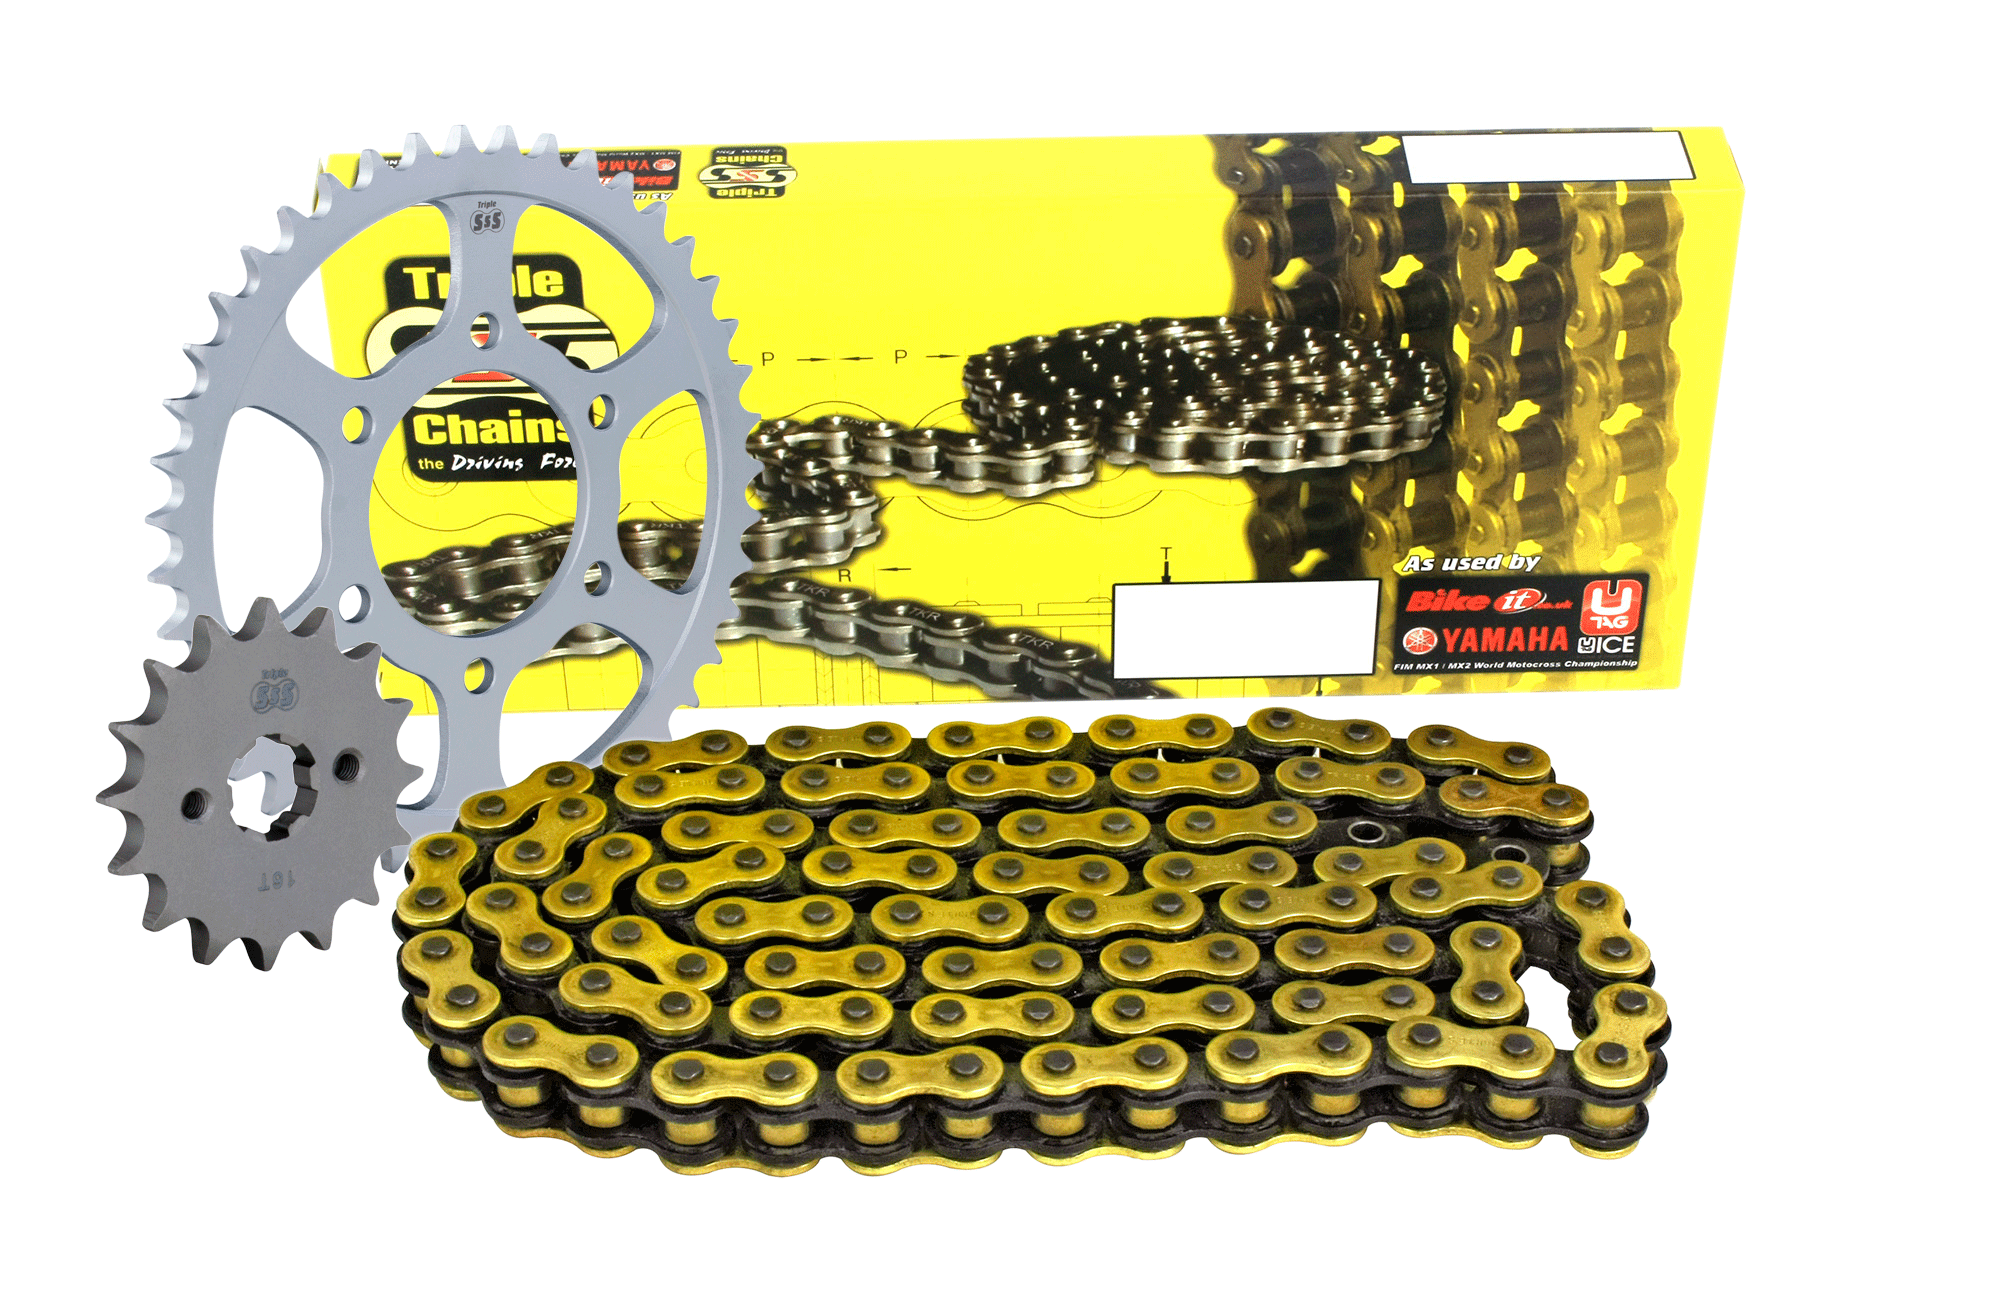 Suzuki GSX-R1000 K7-K8 07-08 Chain & Sprocket Kit: 17T Front, 43T Rear, HD O-Ring Gold Chain 530H 112 Link